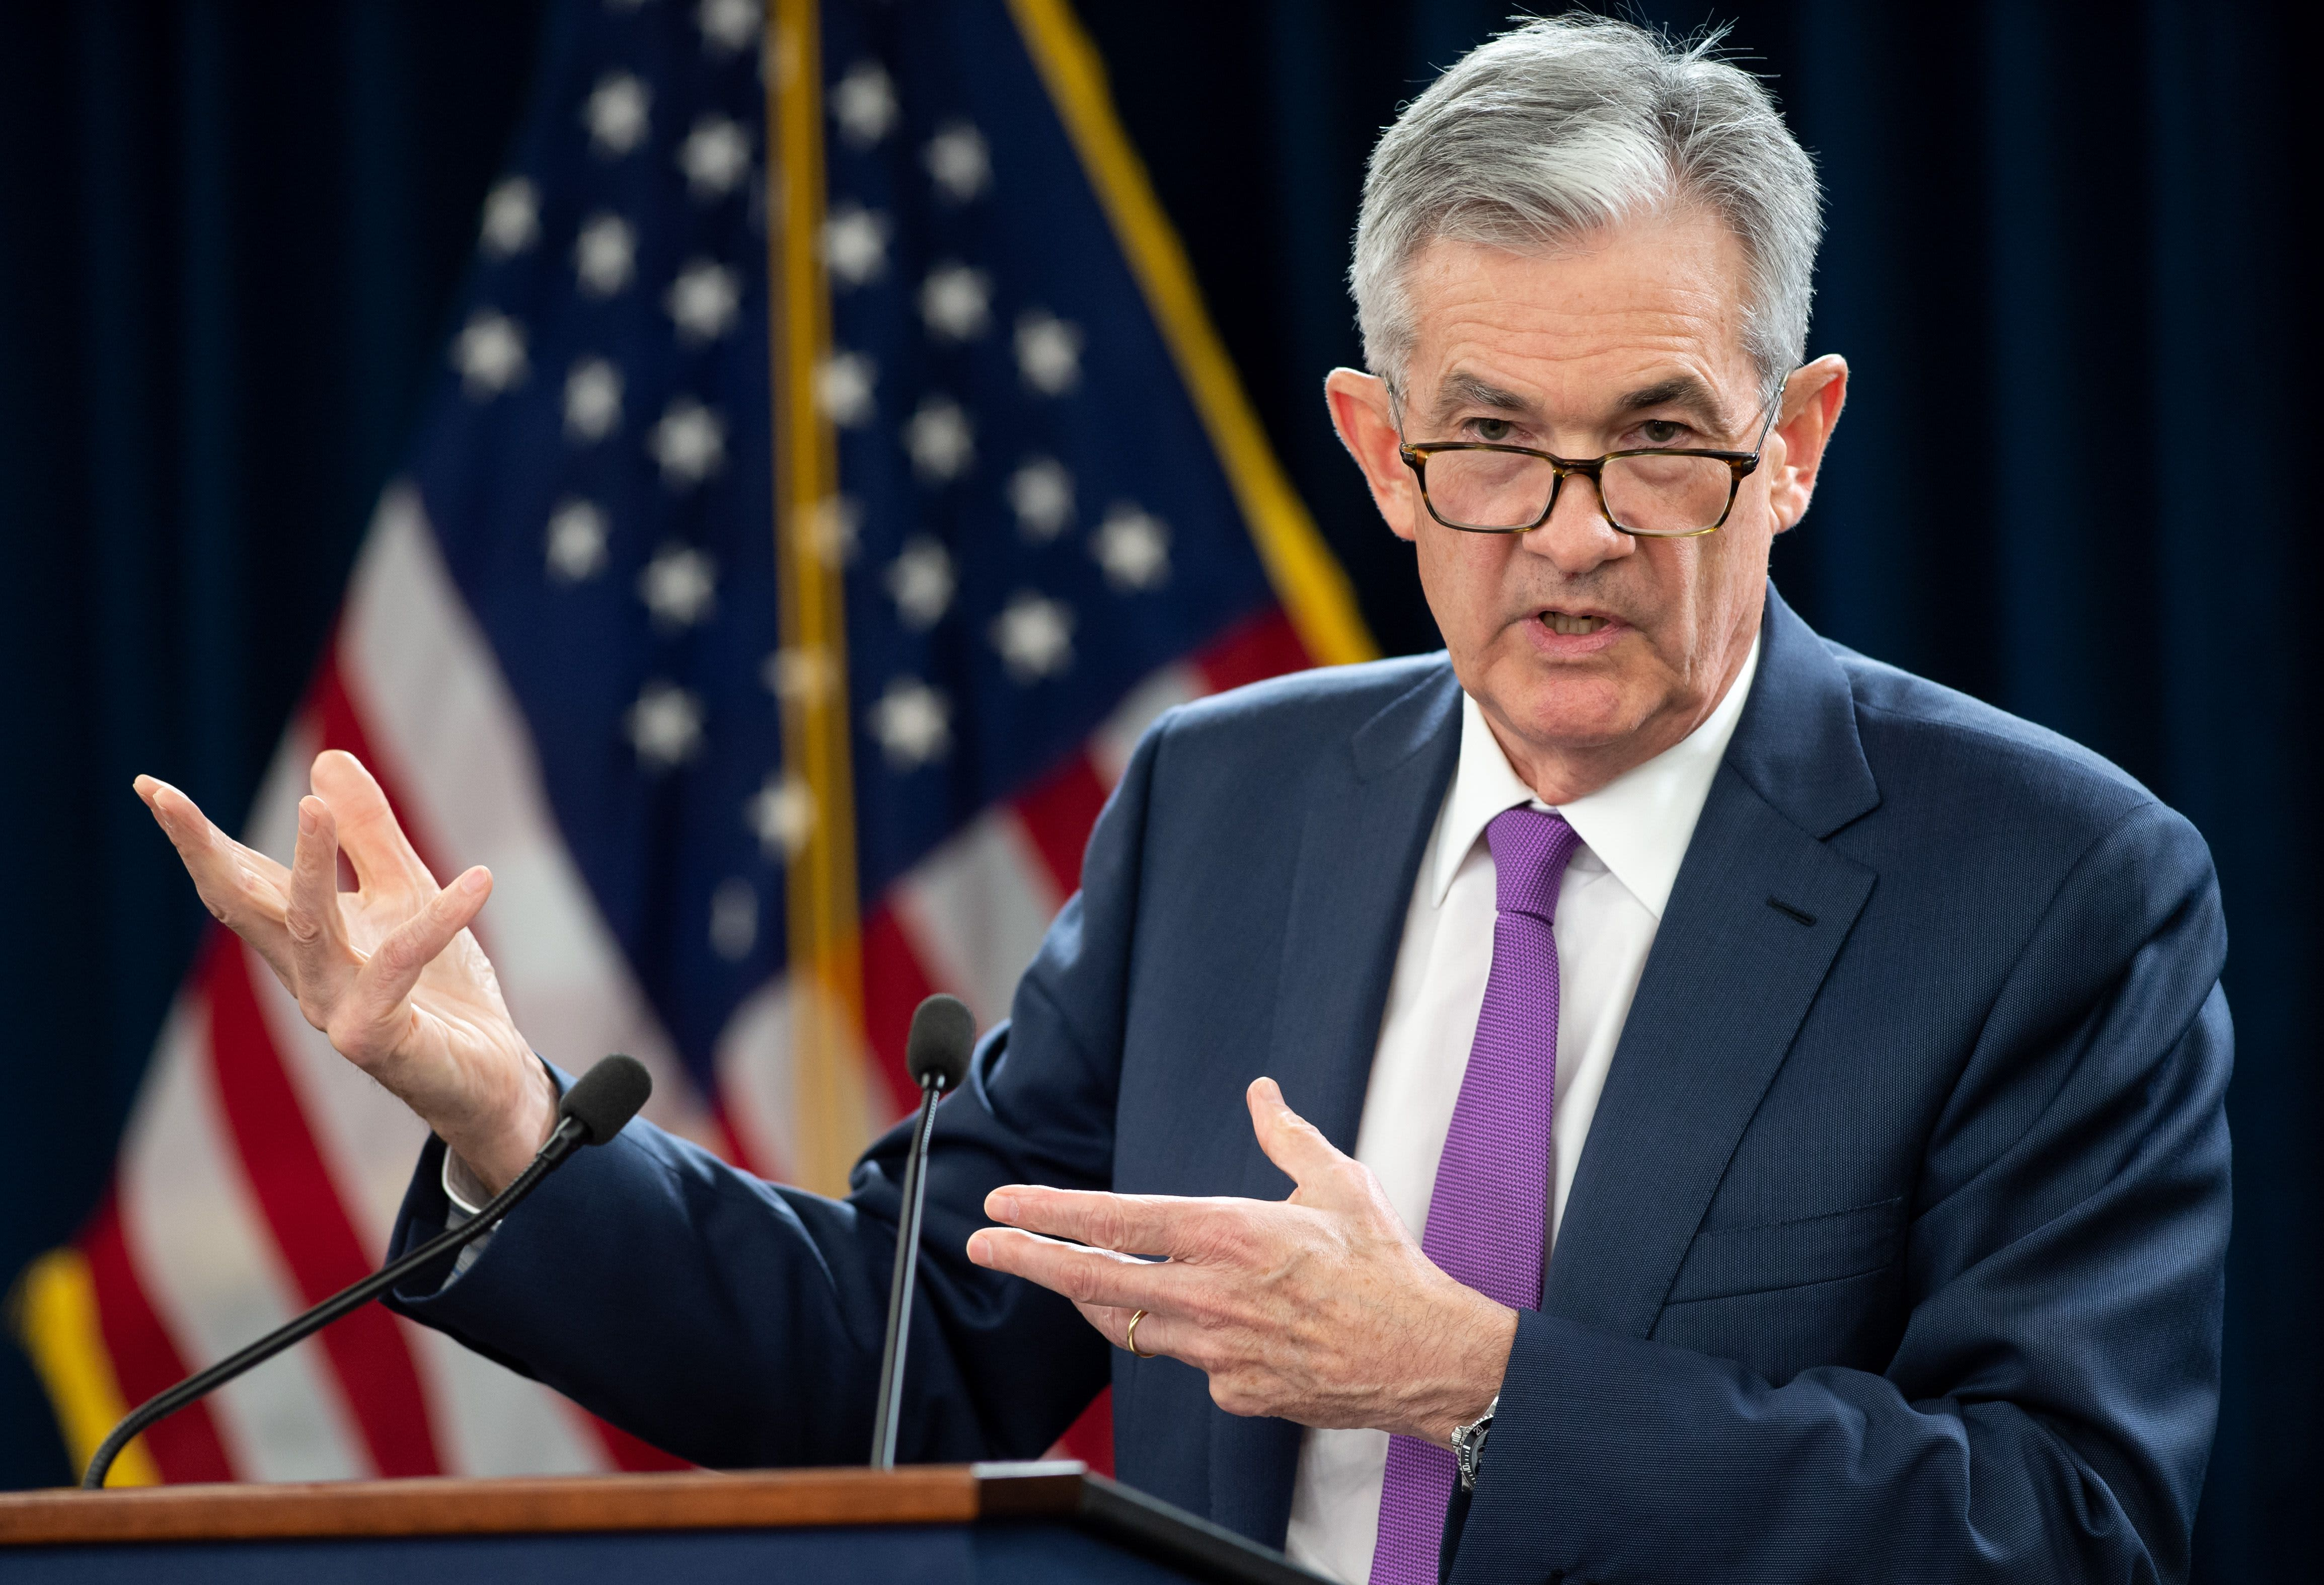 Powell says Fed doesn't see strong case for rate cut or hike